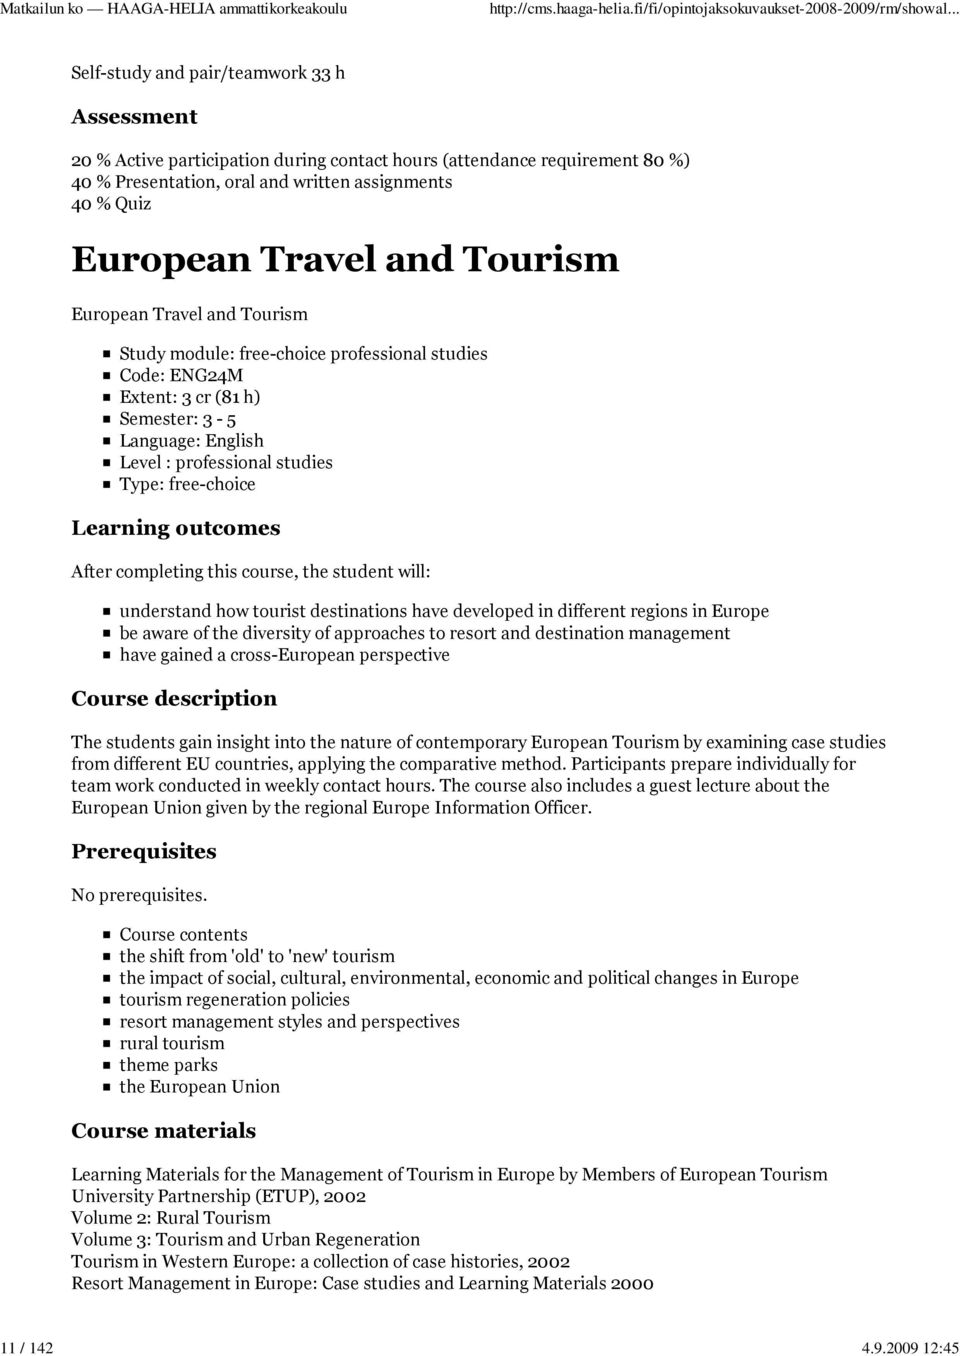 Travel and Tourism European Travel and Tourism Study module: free-choice professional studies Code: ENG24M Extent: 3 cr (81 h) Semester: 3-5 Language: English Level : professional studies Type: